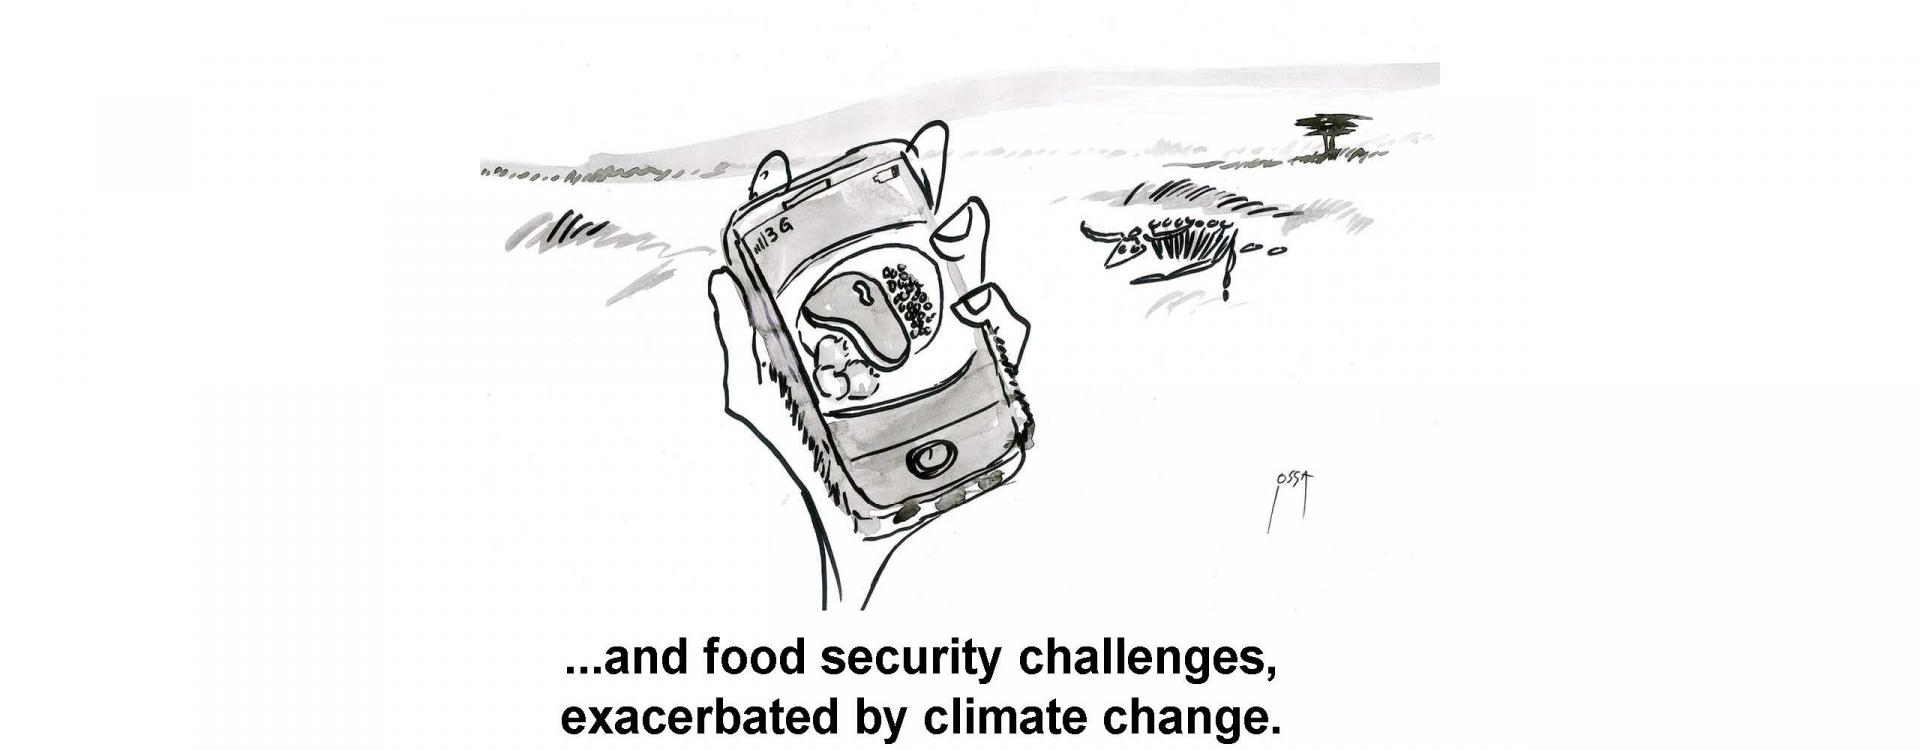 ...and food security challenges, exacerbated by climate change.